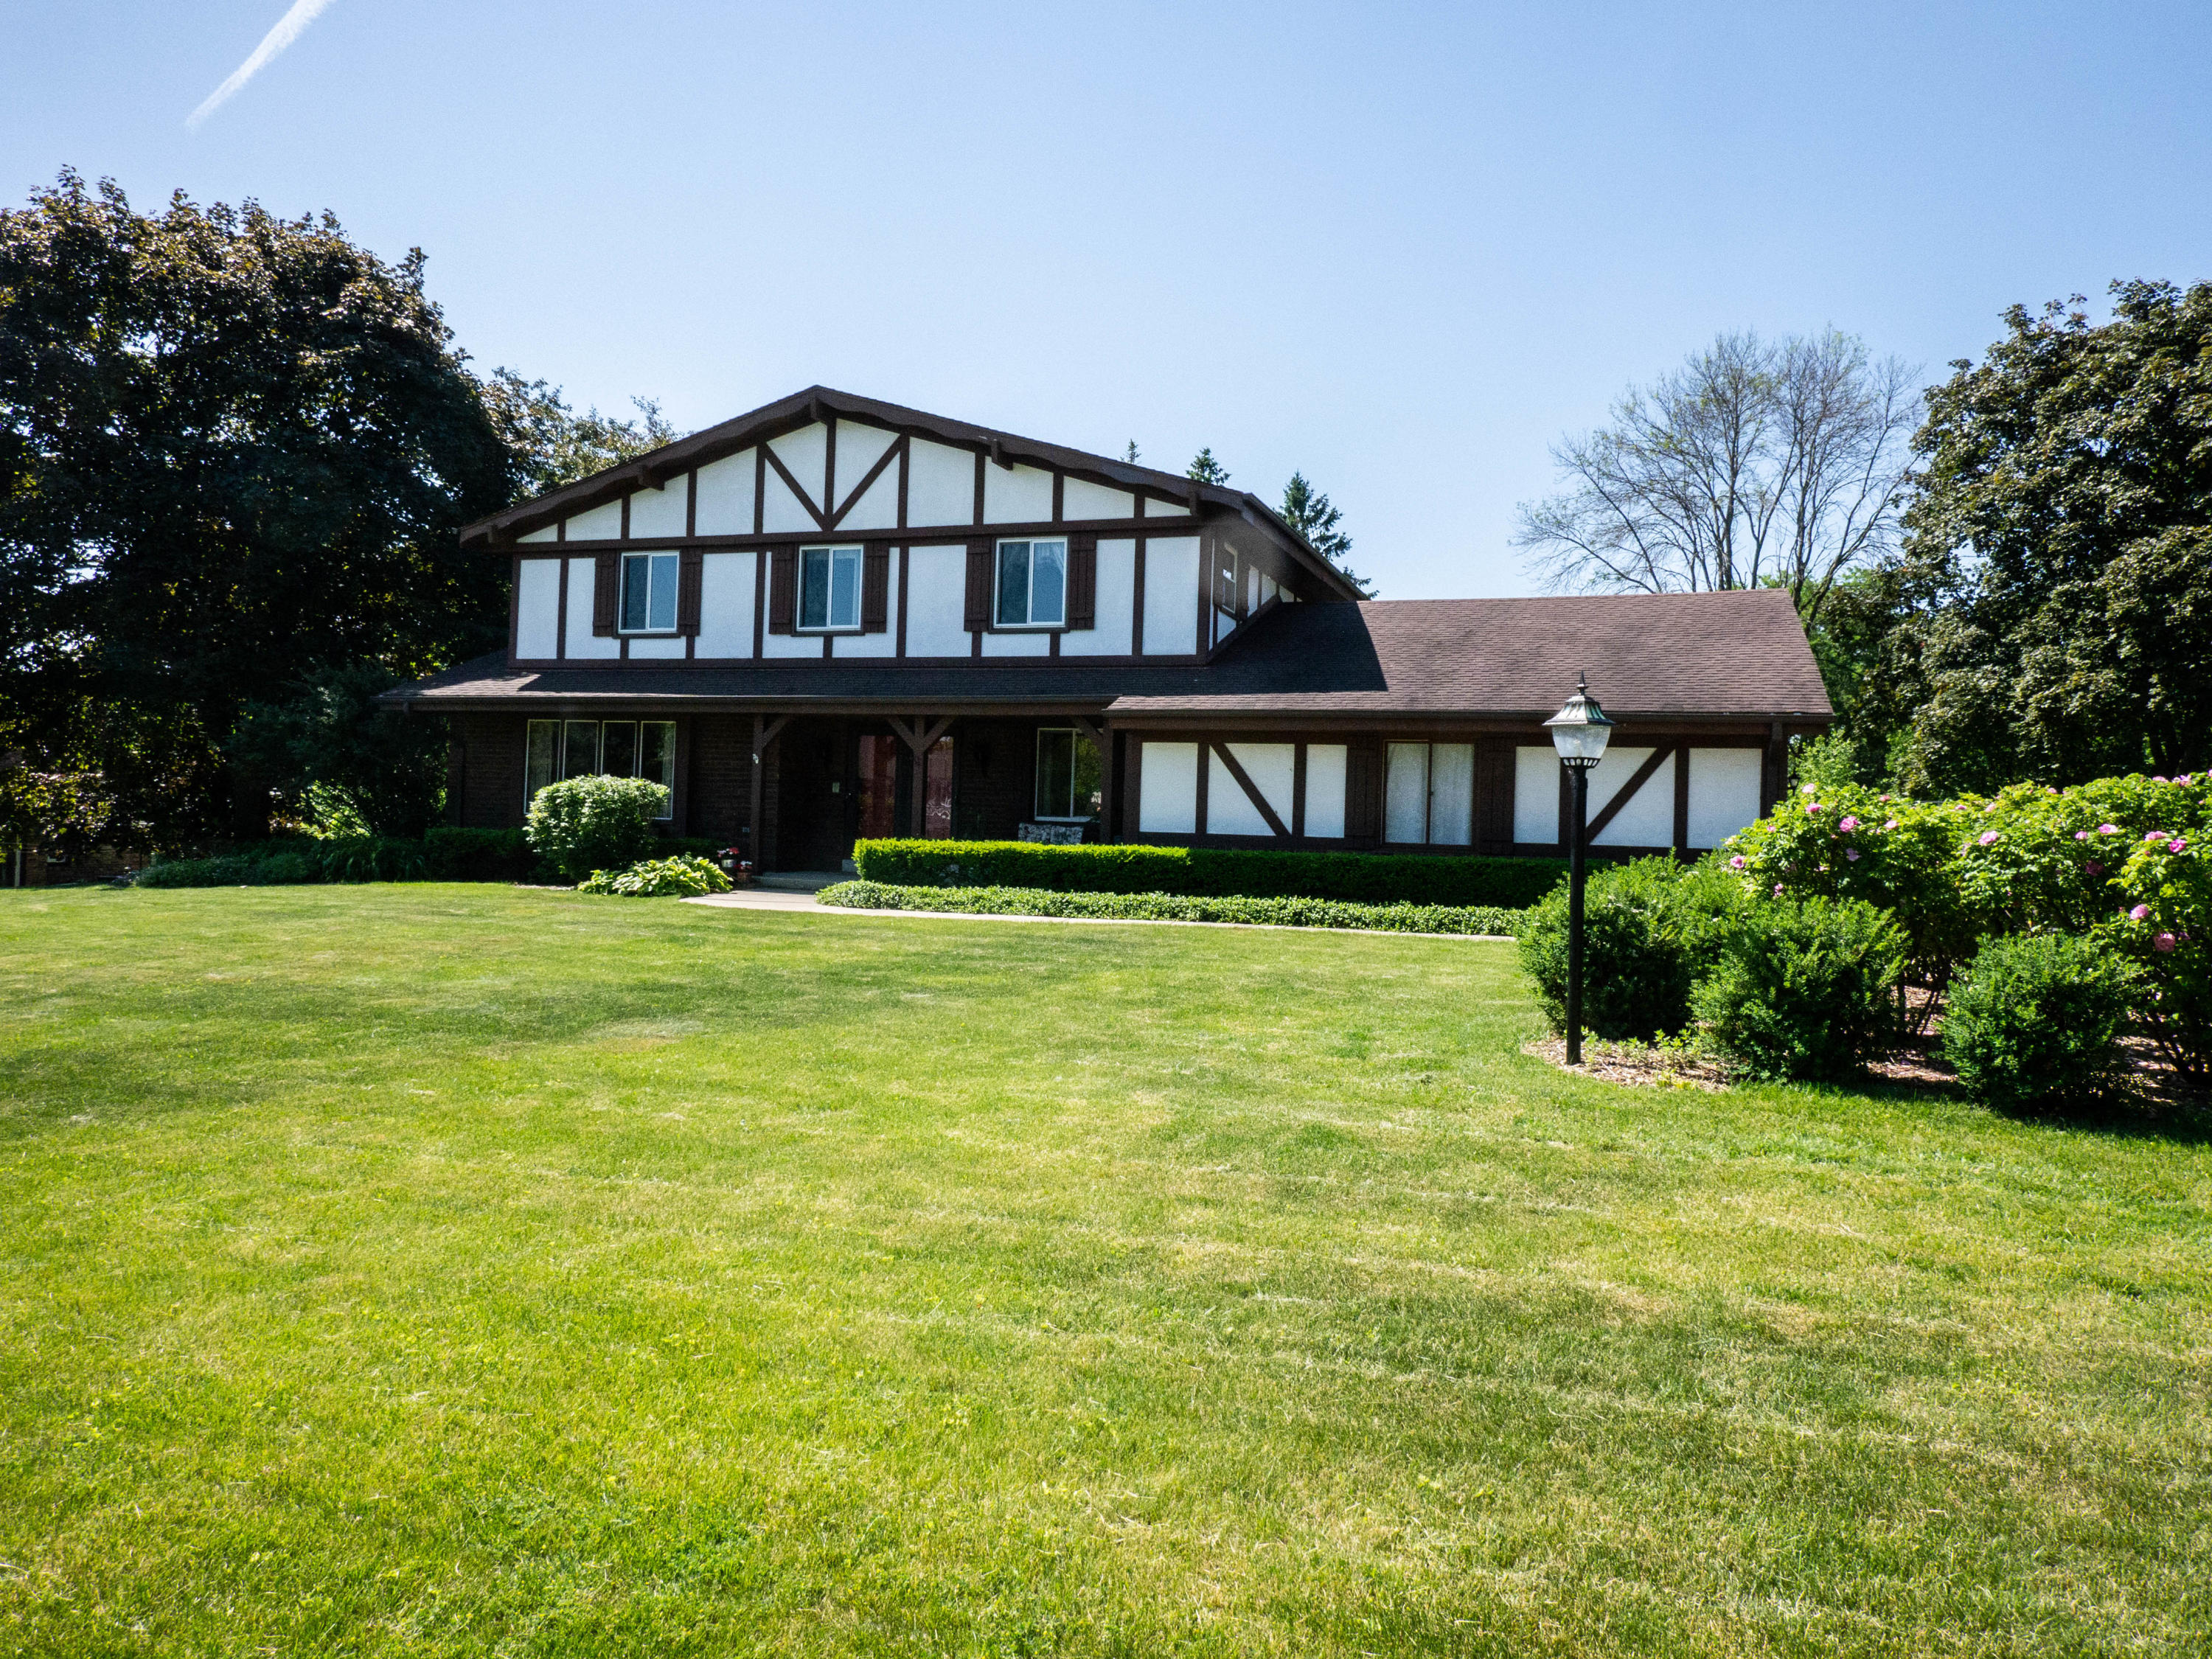 16325 Shore Line Dr, Brookfield, Wisconsin 53005, 5 Bedrooms Bedrooms, 11 Rooms Rooms,2 BathroomsBathrooms,Single-Family,For Sale,Shore Line Dr,1694356